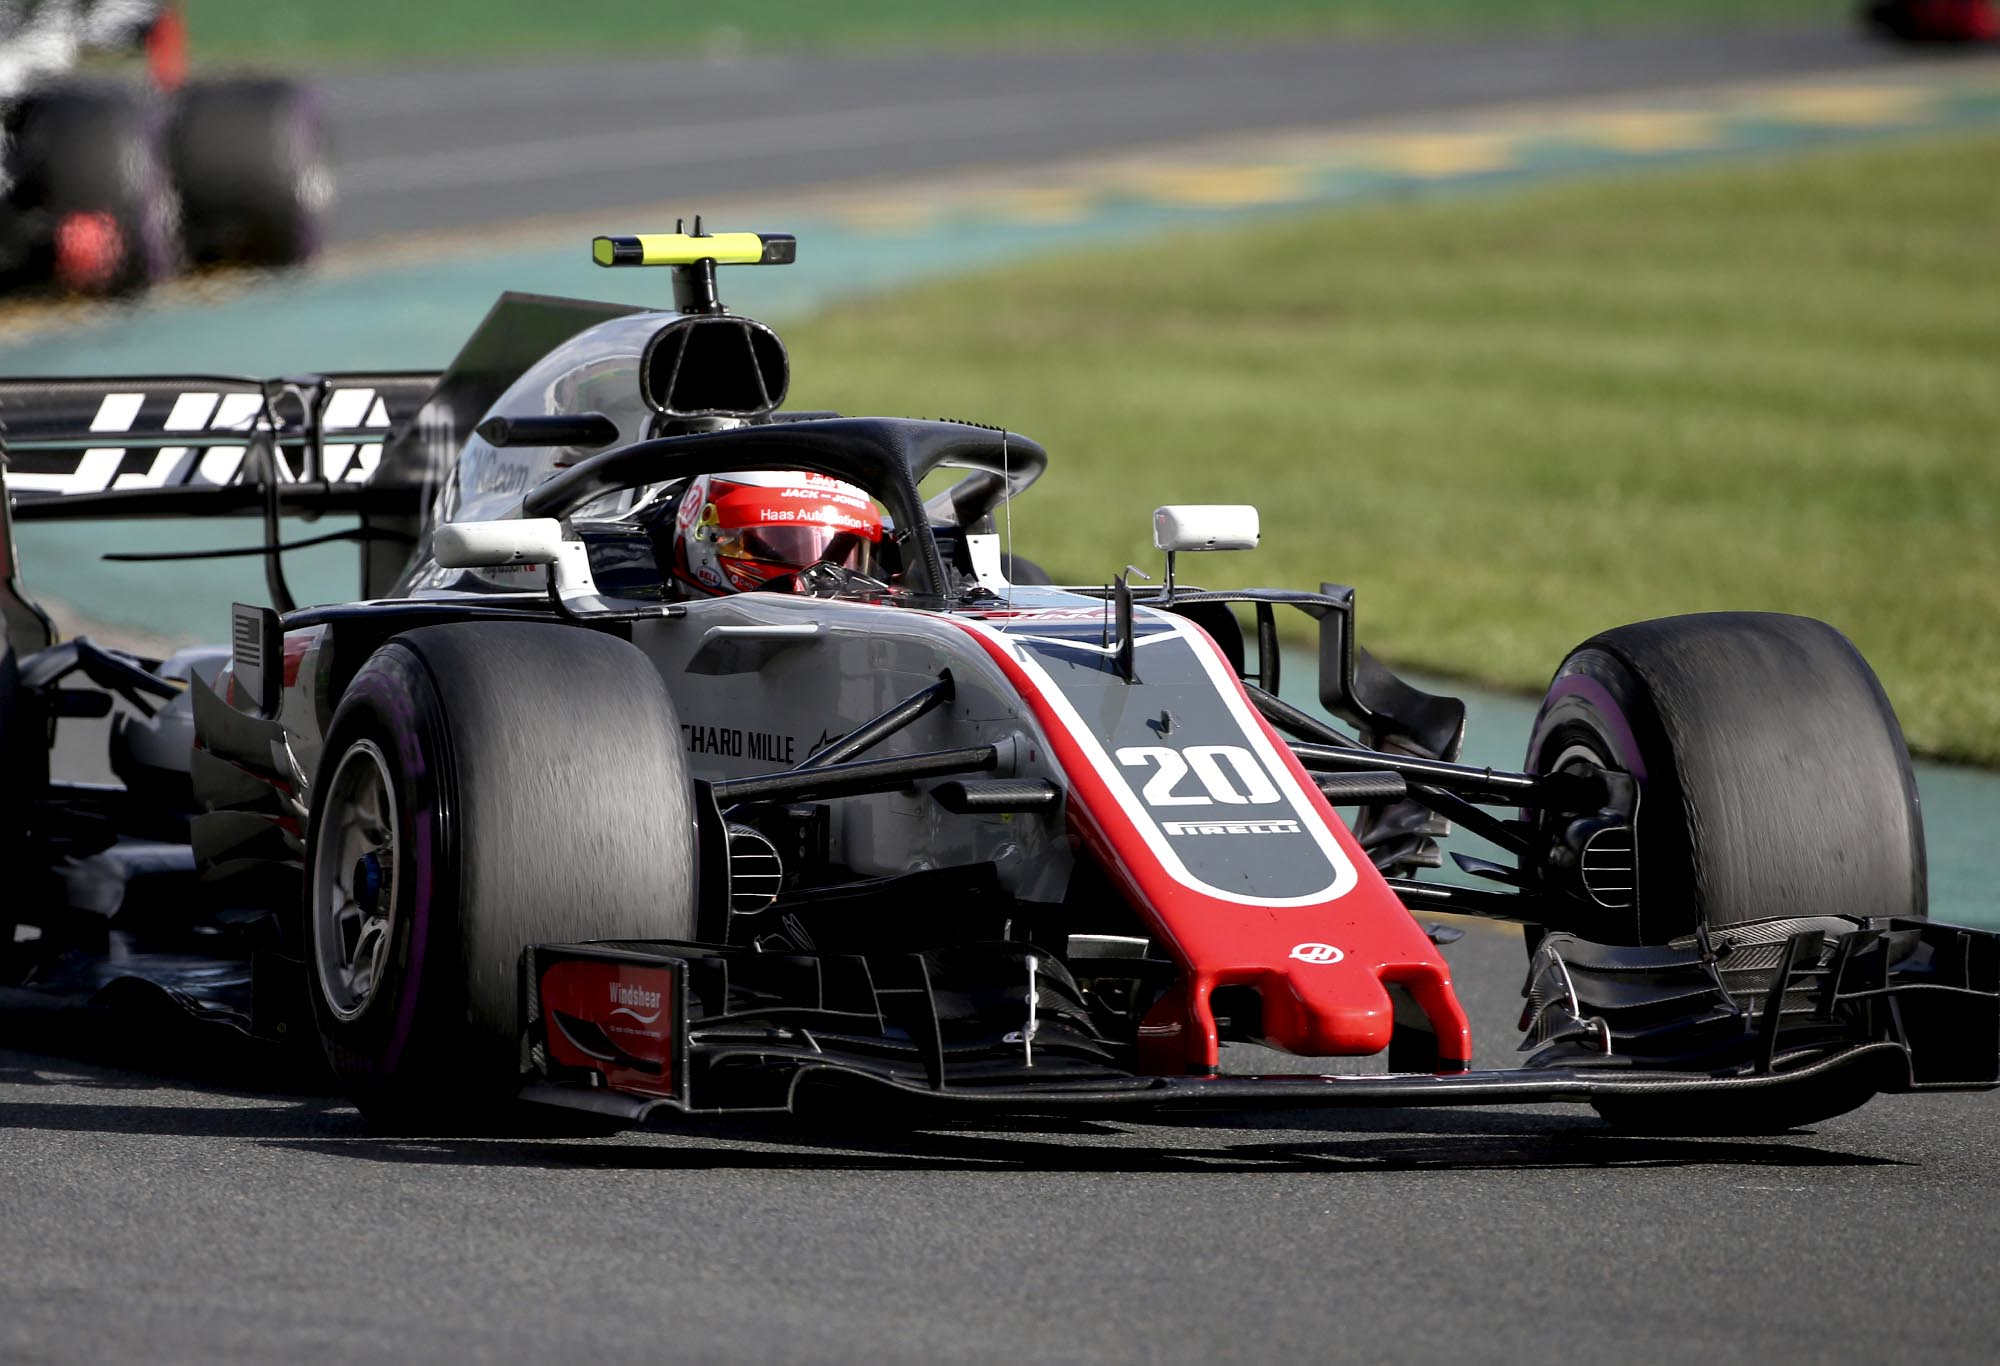 Haas driver Kevin Magnussen on track at the 2018 Australian Grand Prix.